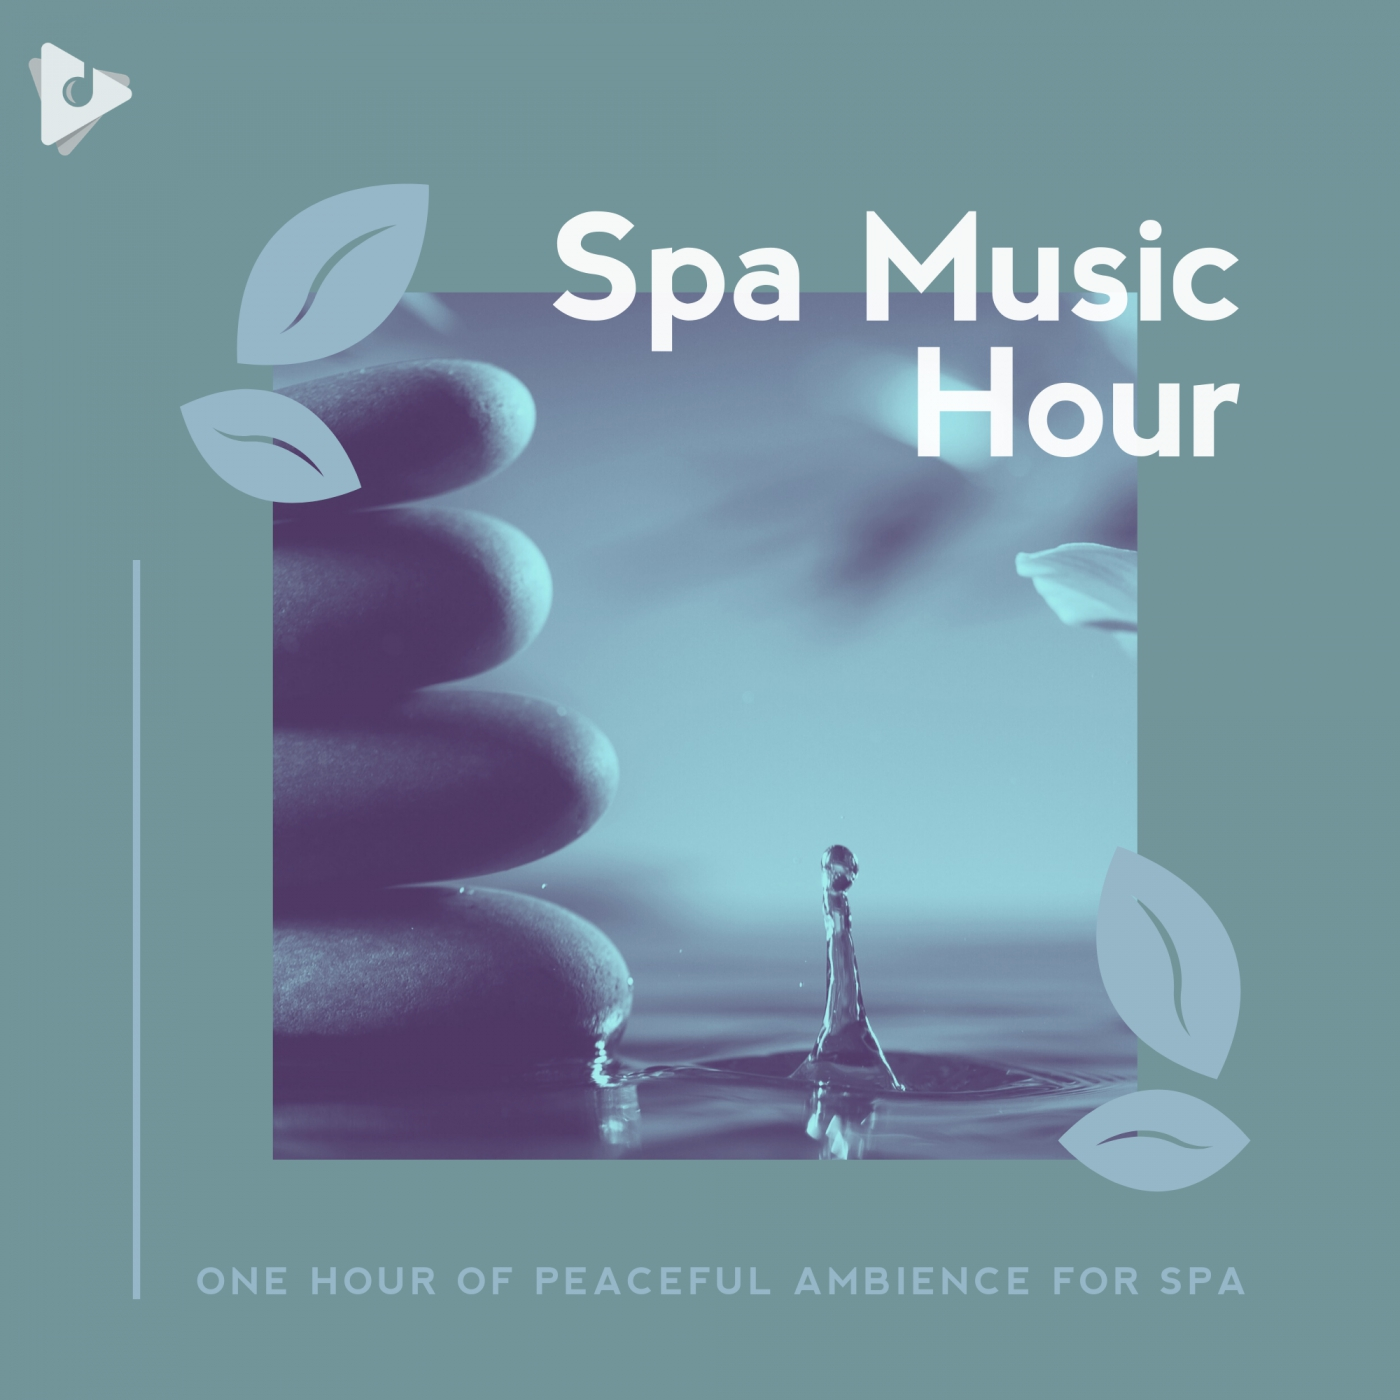 One Hour of Peaceful Ambience for Spa